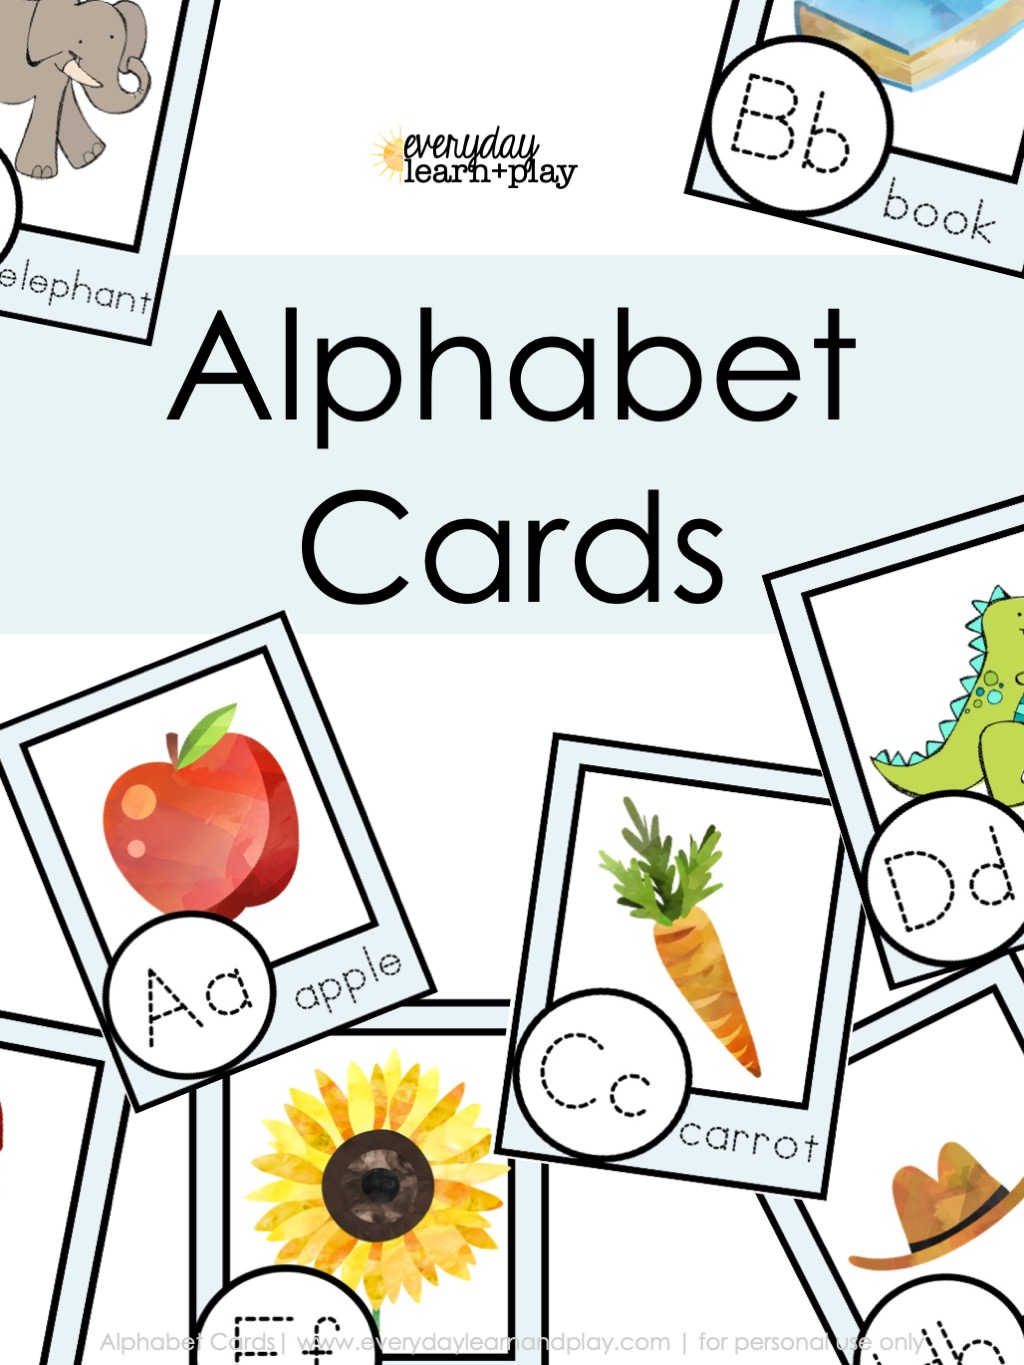 Alphaabet Card Cover